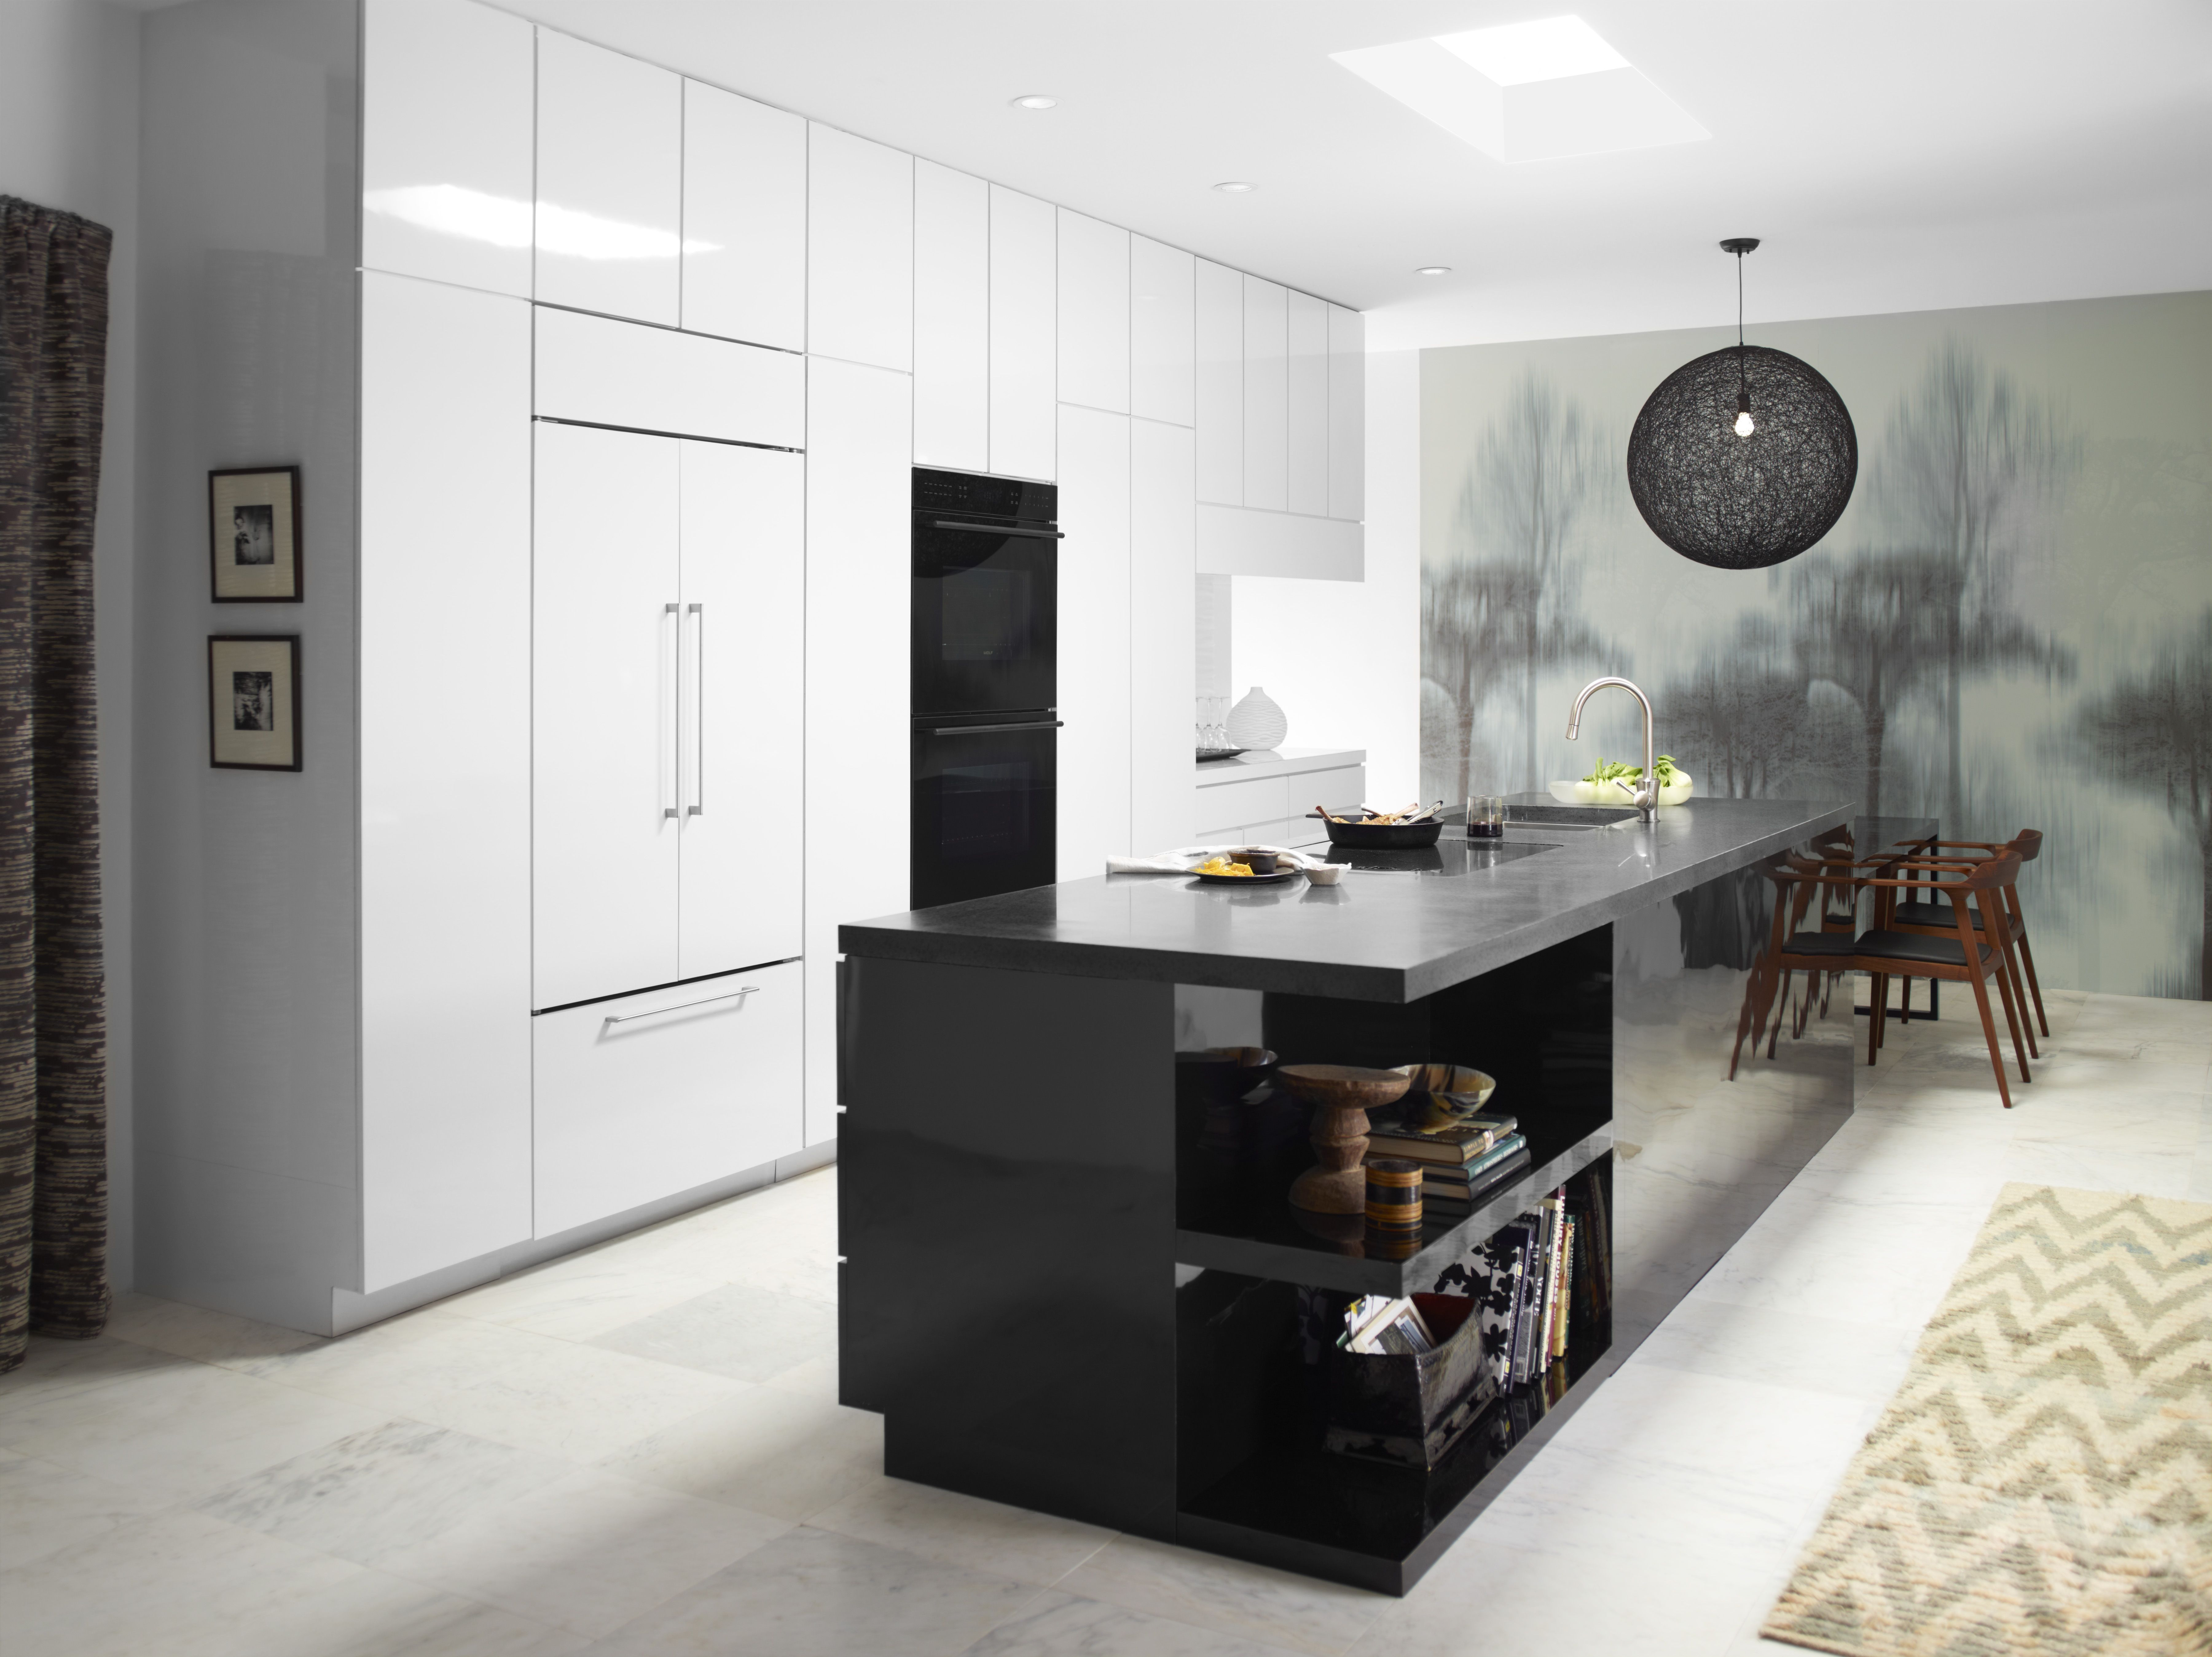 Paneled Appliances To Blend In With Your Cabinets Http://www.subzero Wolf.com  Http://www.edelmanhome.com